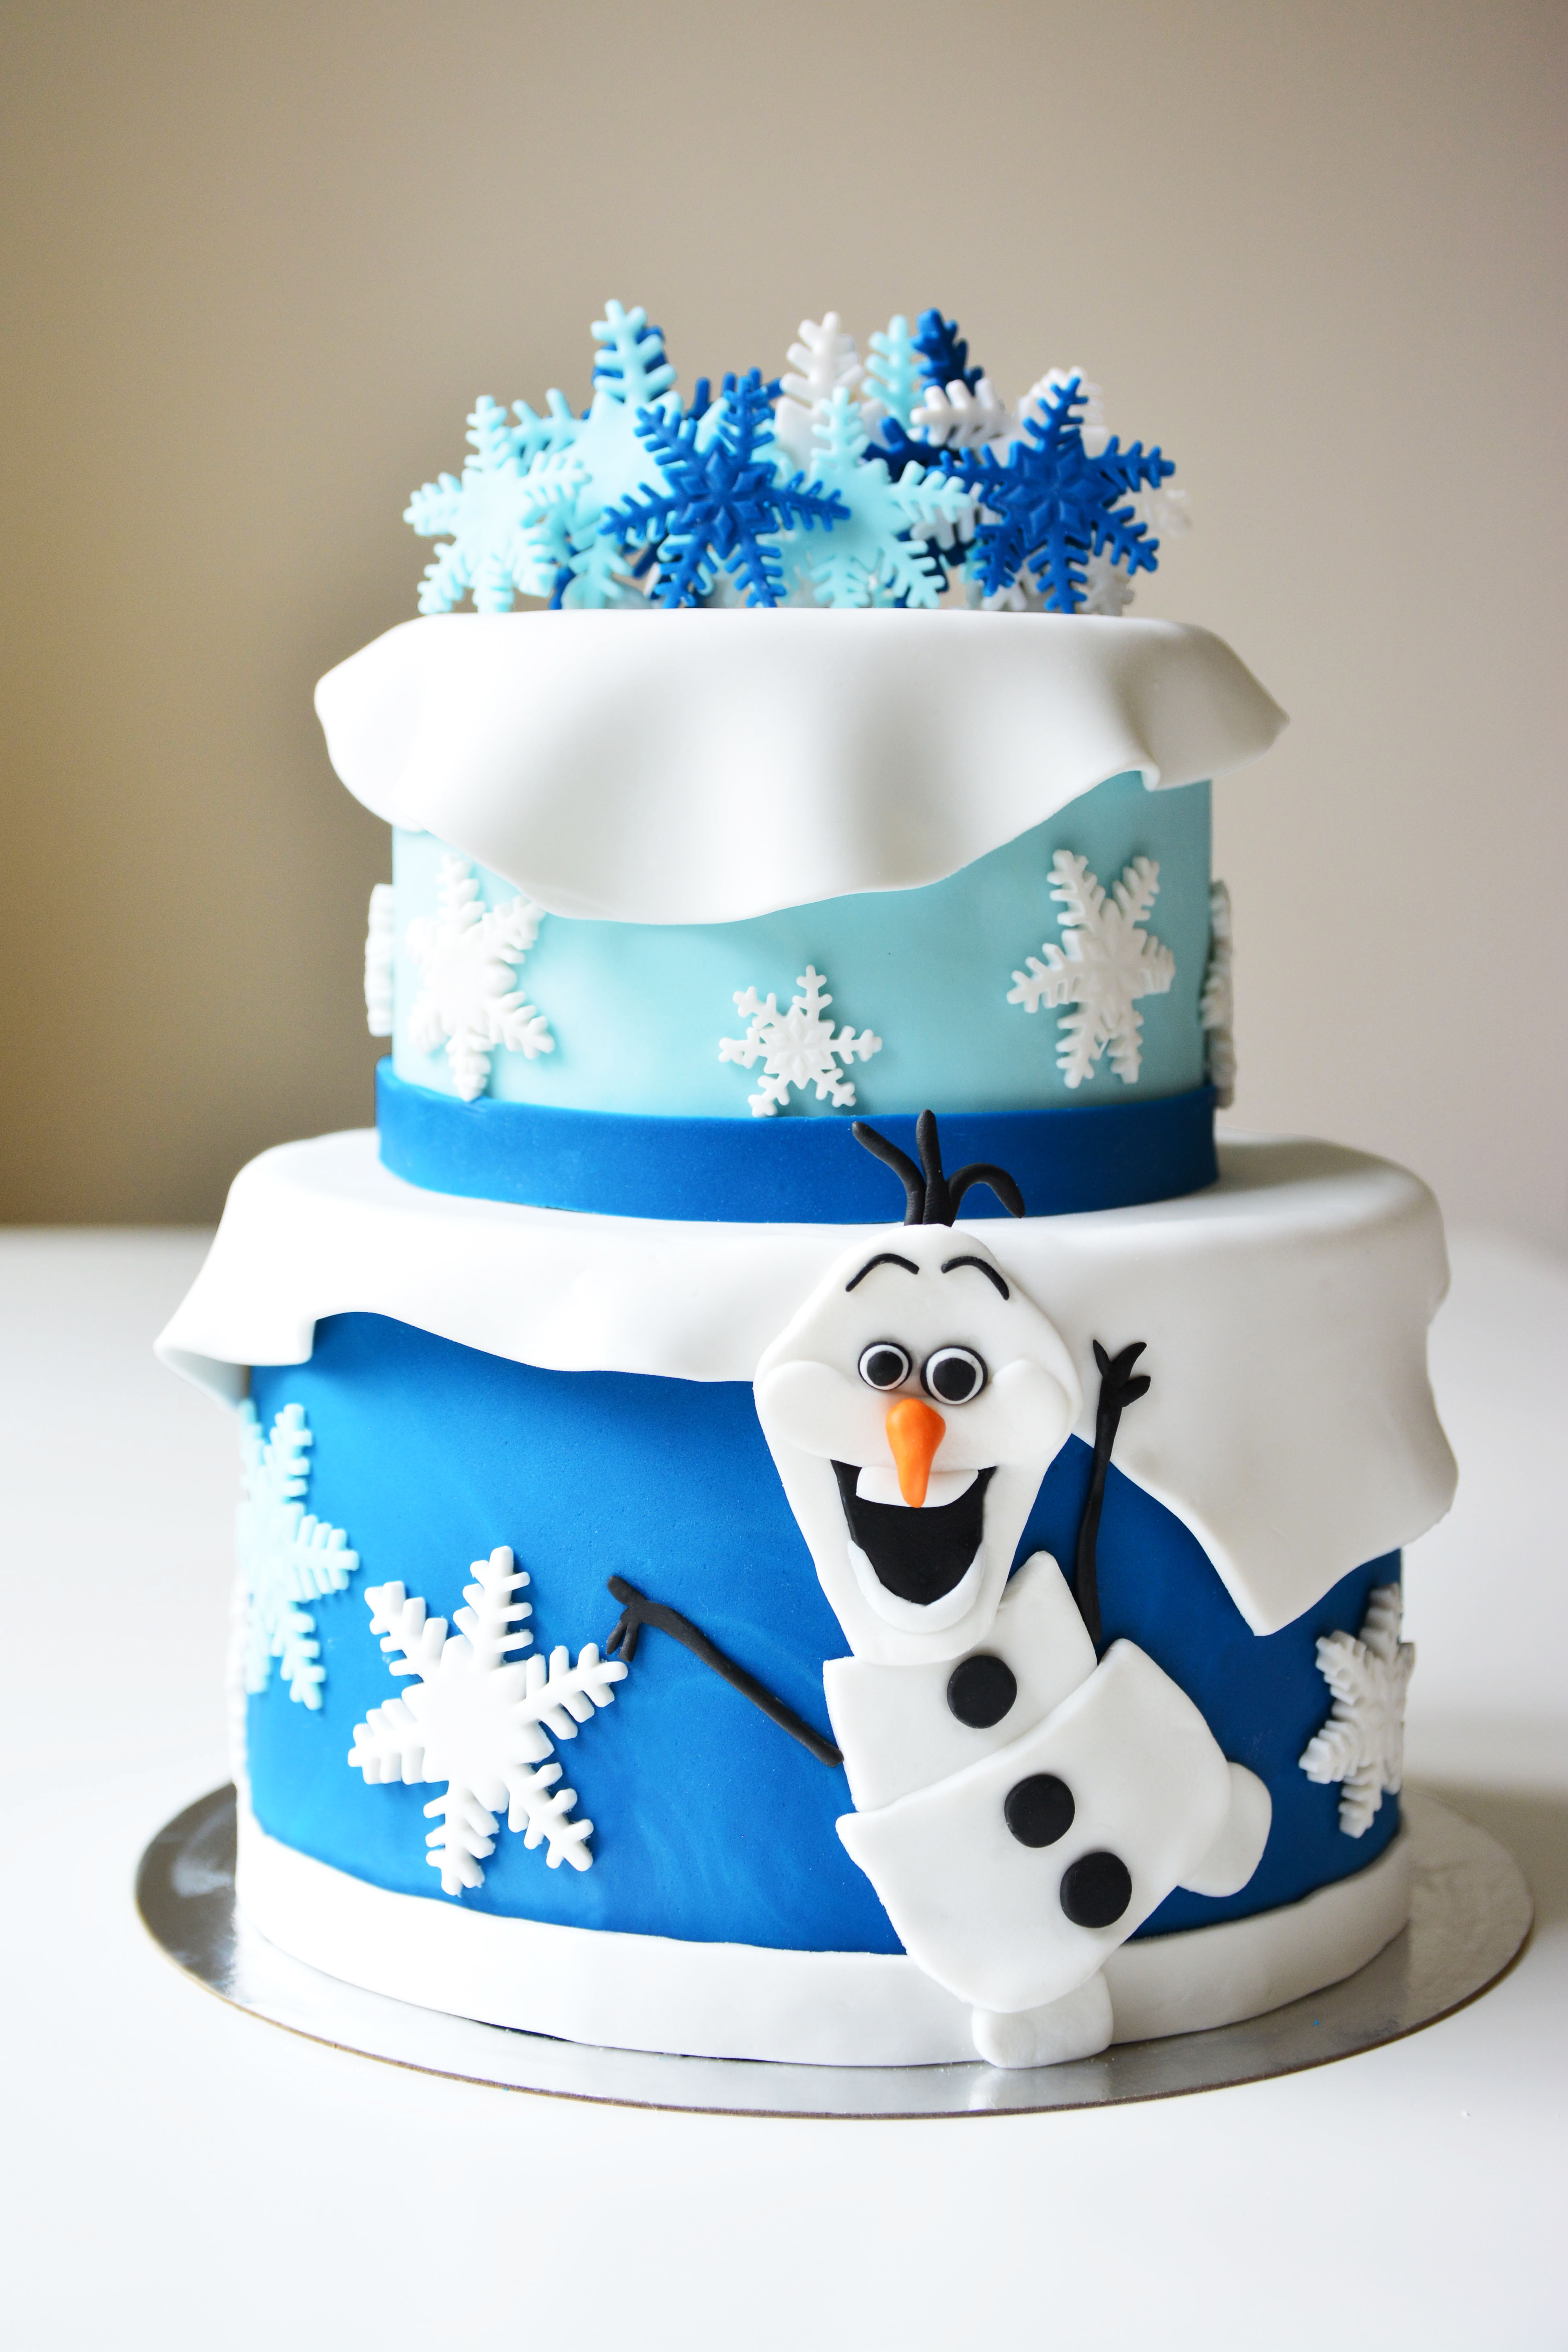 Frozen Medium Cake (2 Floors)